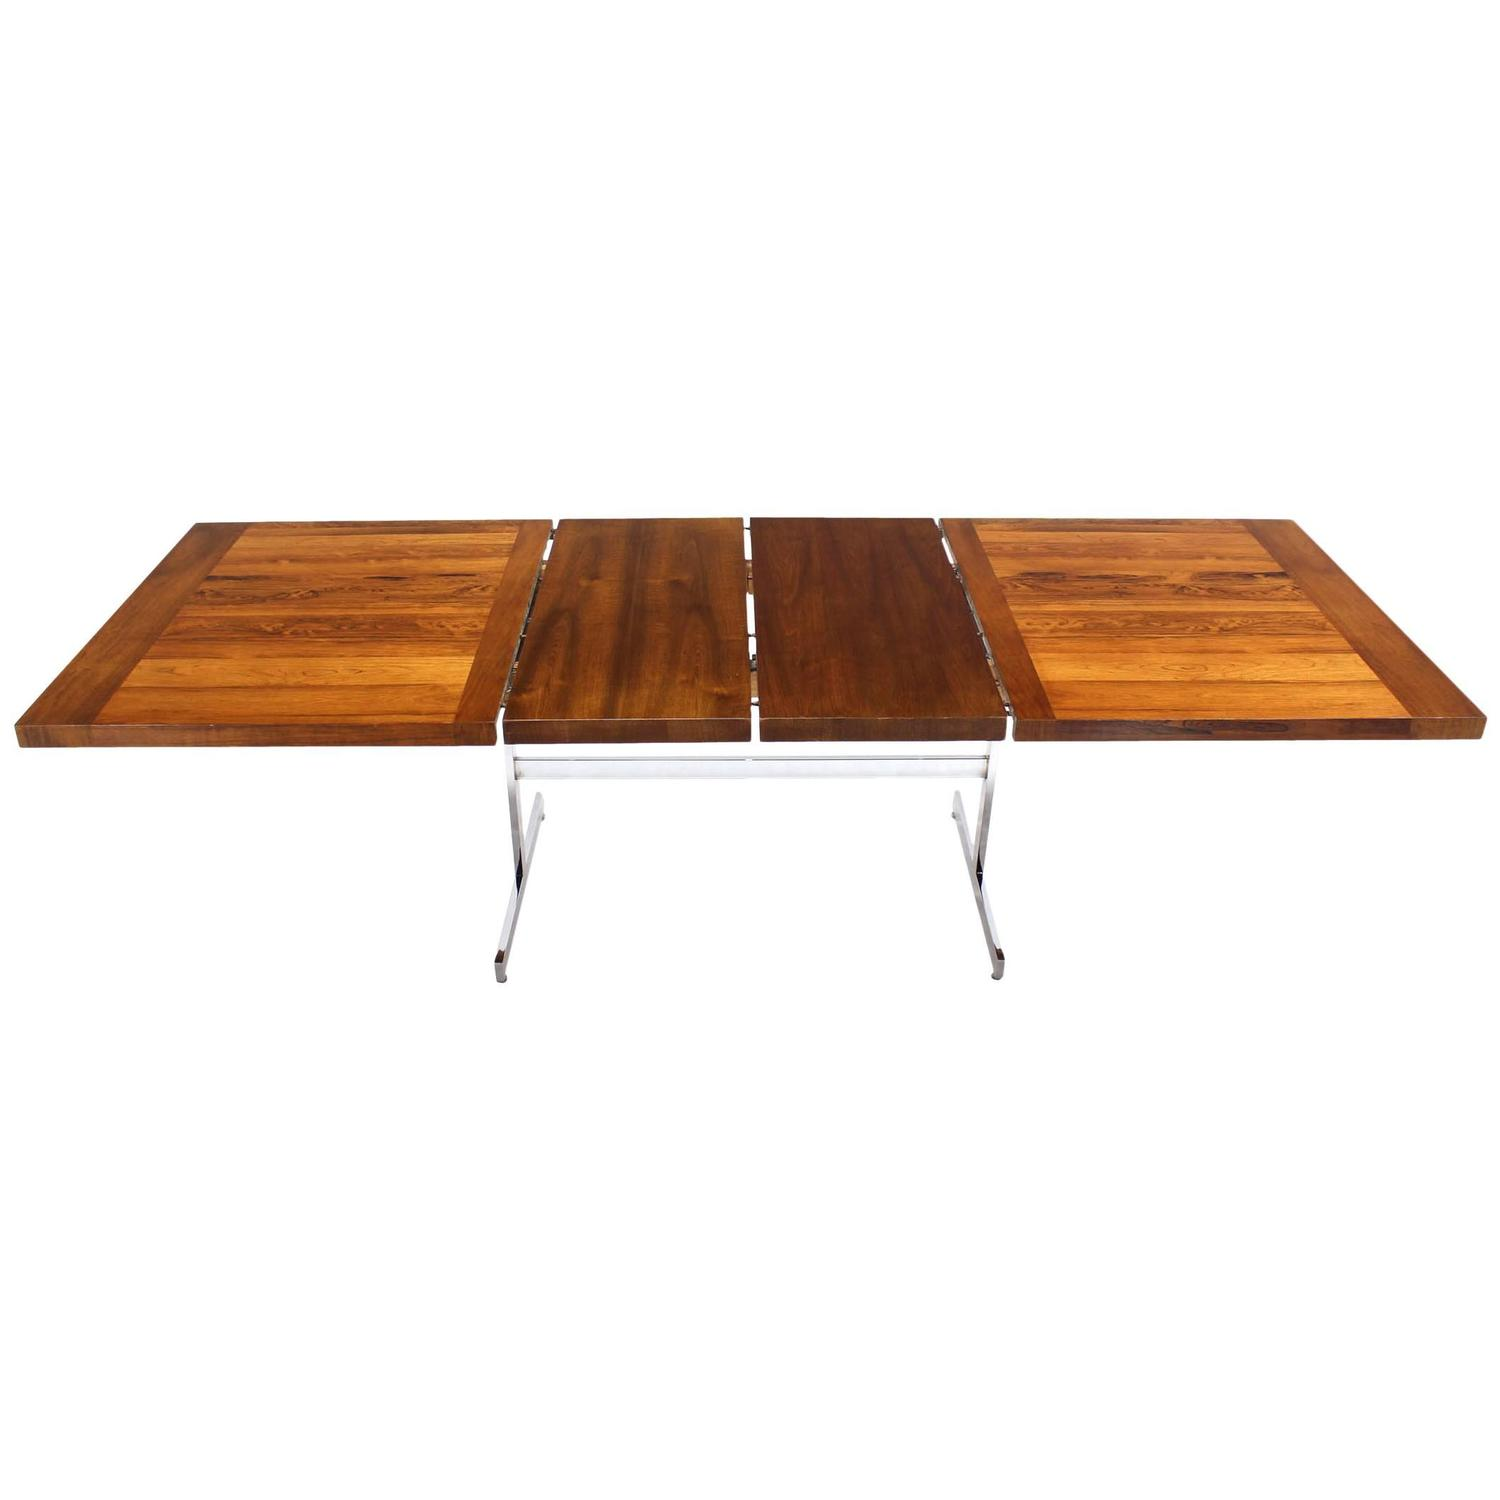 Chrome Base Walnut And Rosewood Top Dining Table With Two Leaves For